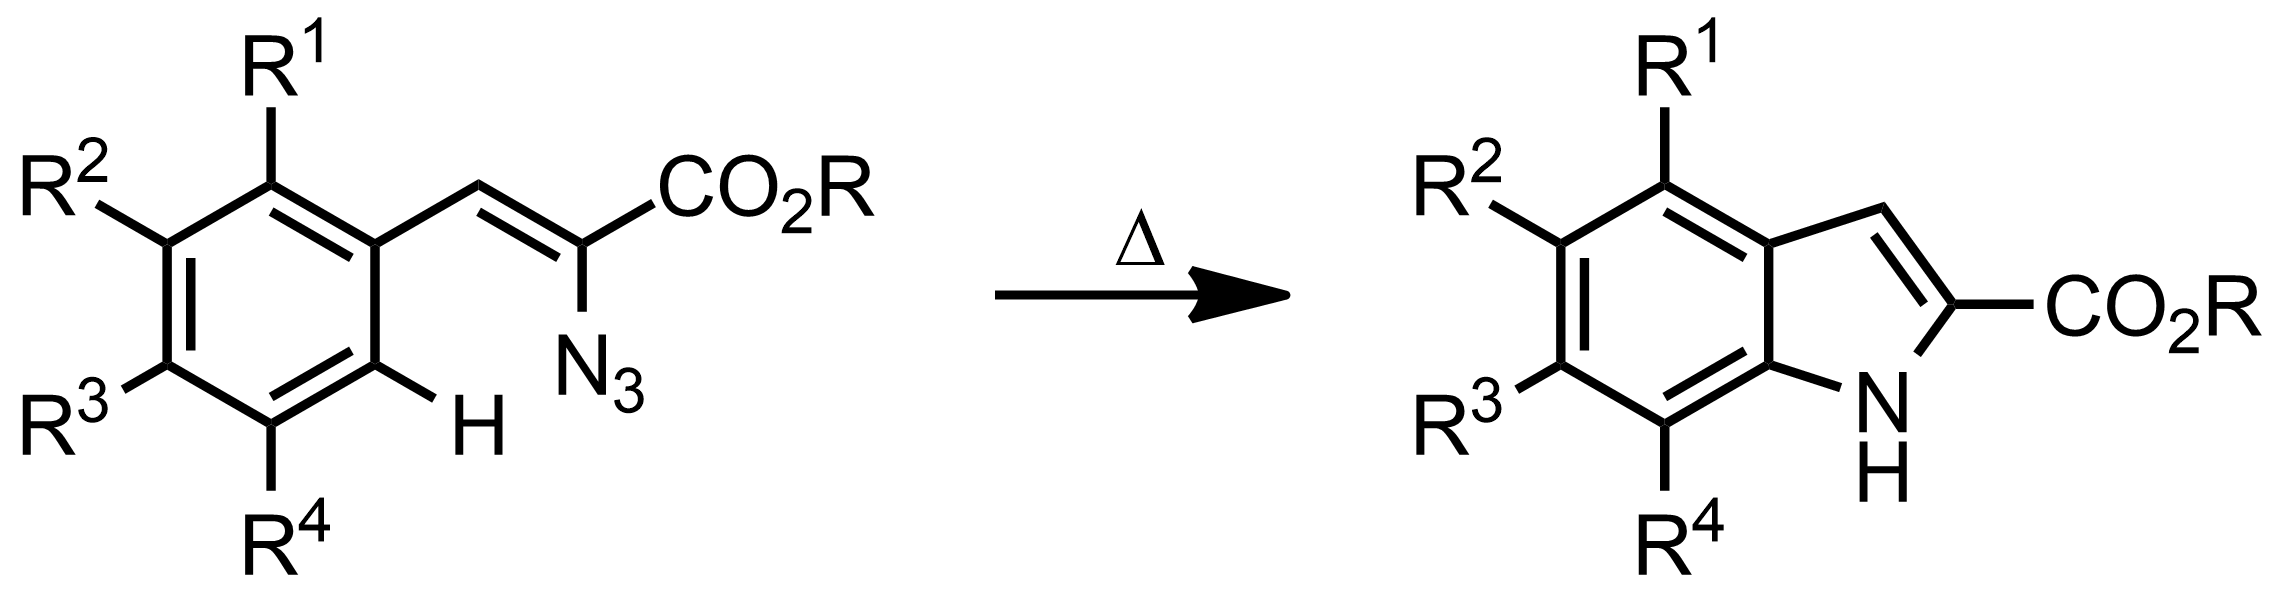 Schematic representation of the Hemetsberger-Knittel Indole Synthesis.